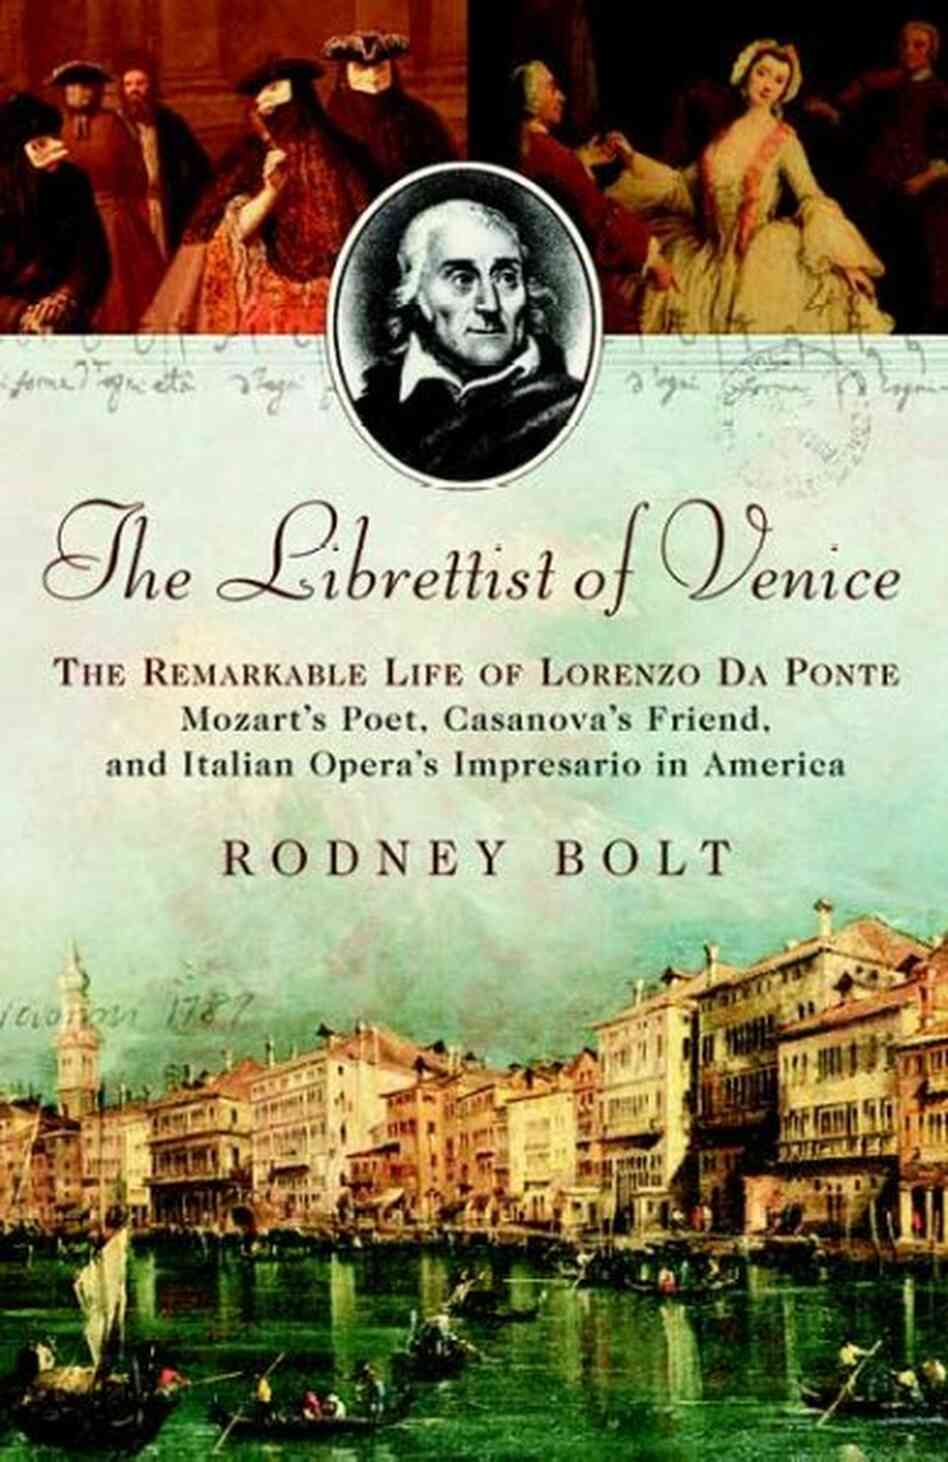 The Librettist of Venice